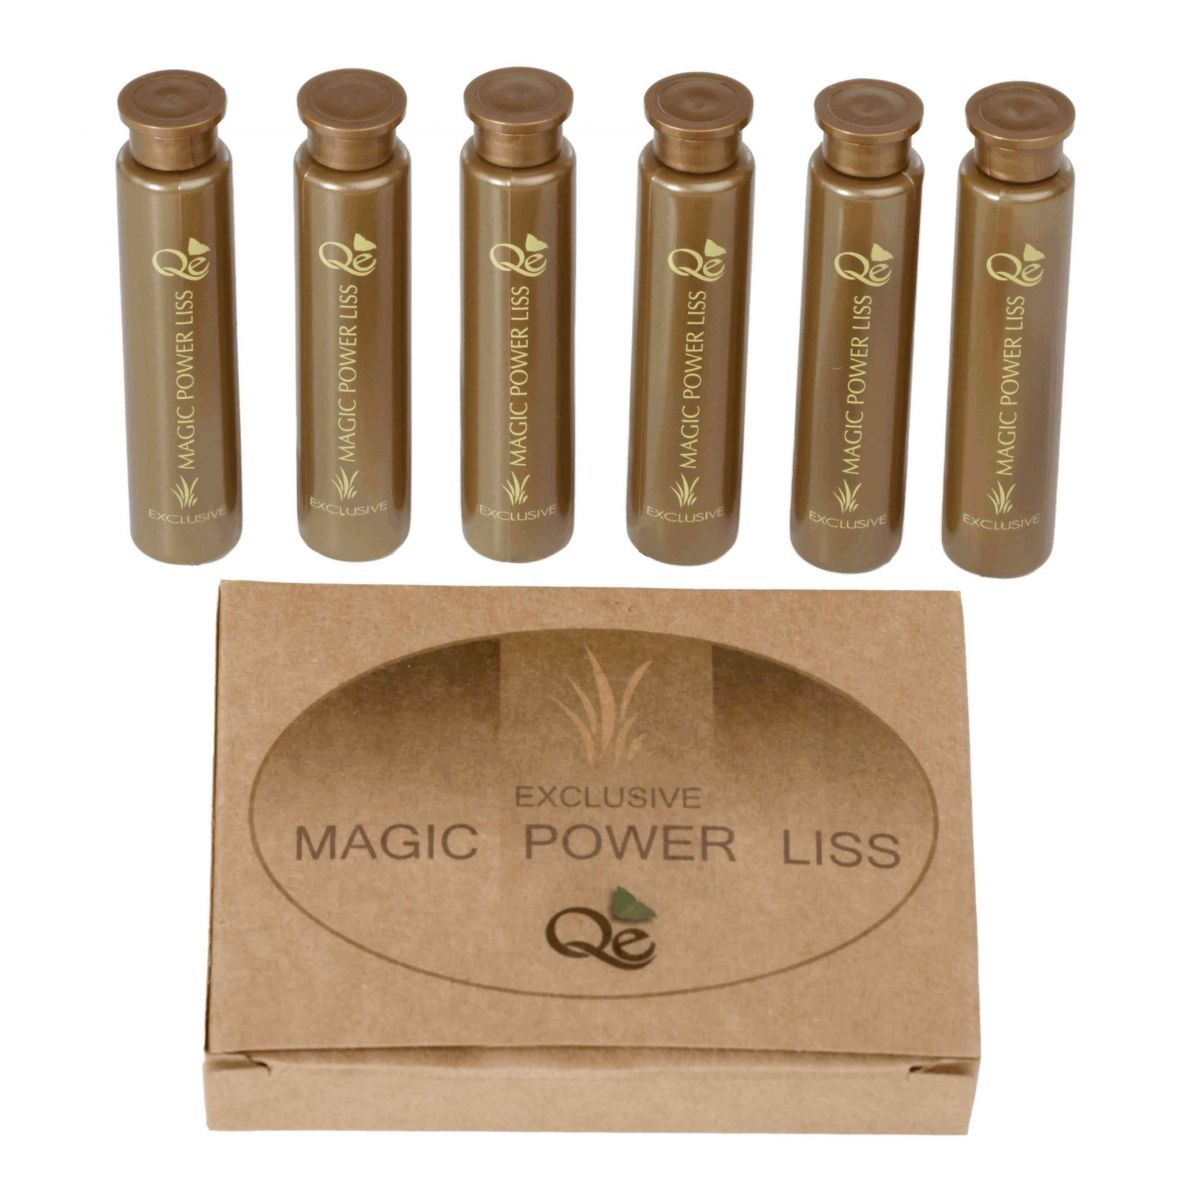 MAGIC POWER LISS - AMPOLA 15ML (CAIXA C/6)  - LOJA QUINTA ESSENCIA